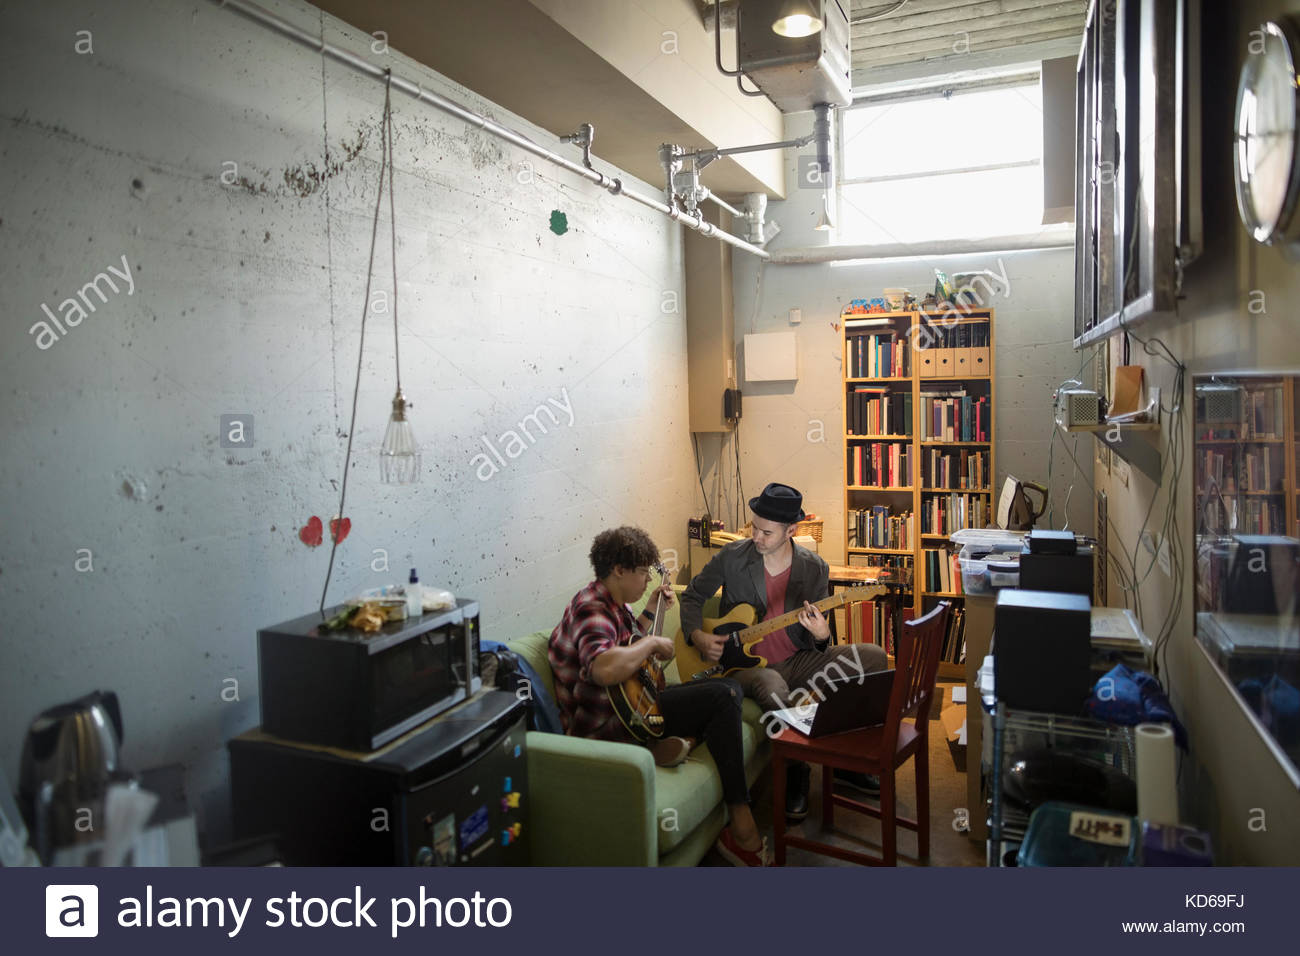 Musicians playing guitars in apartment - Stock Image